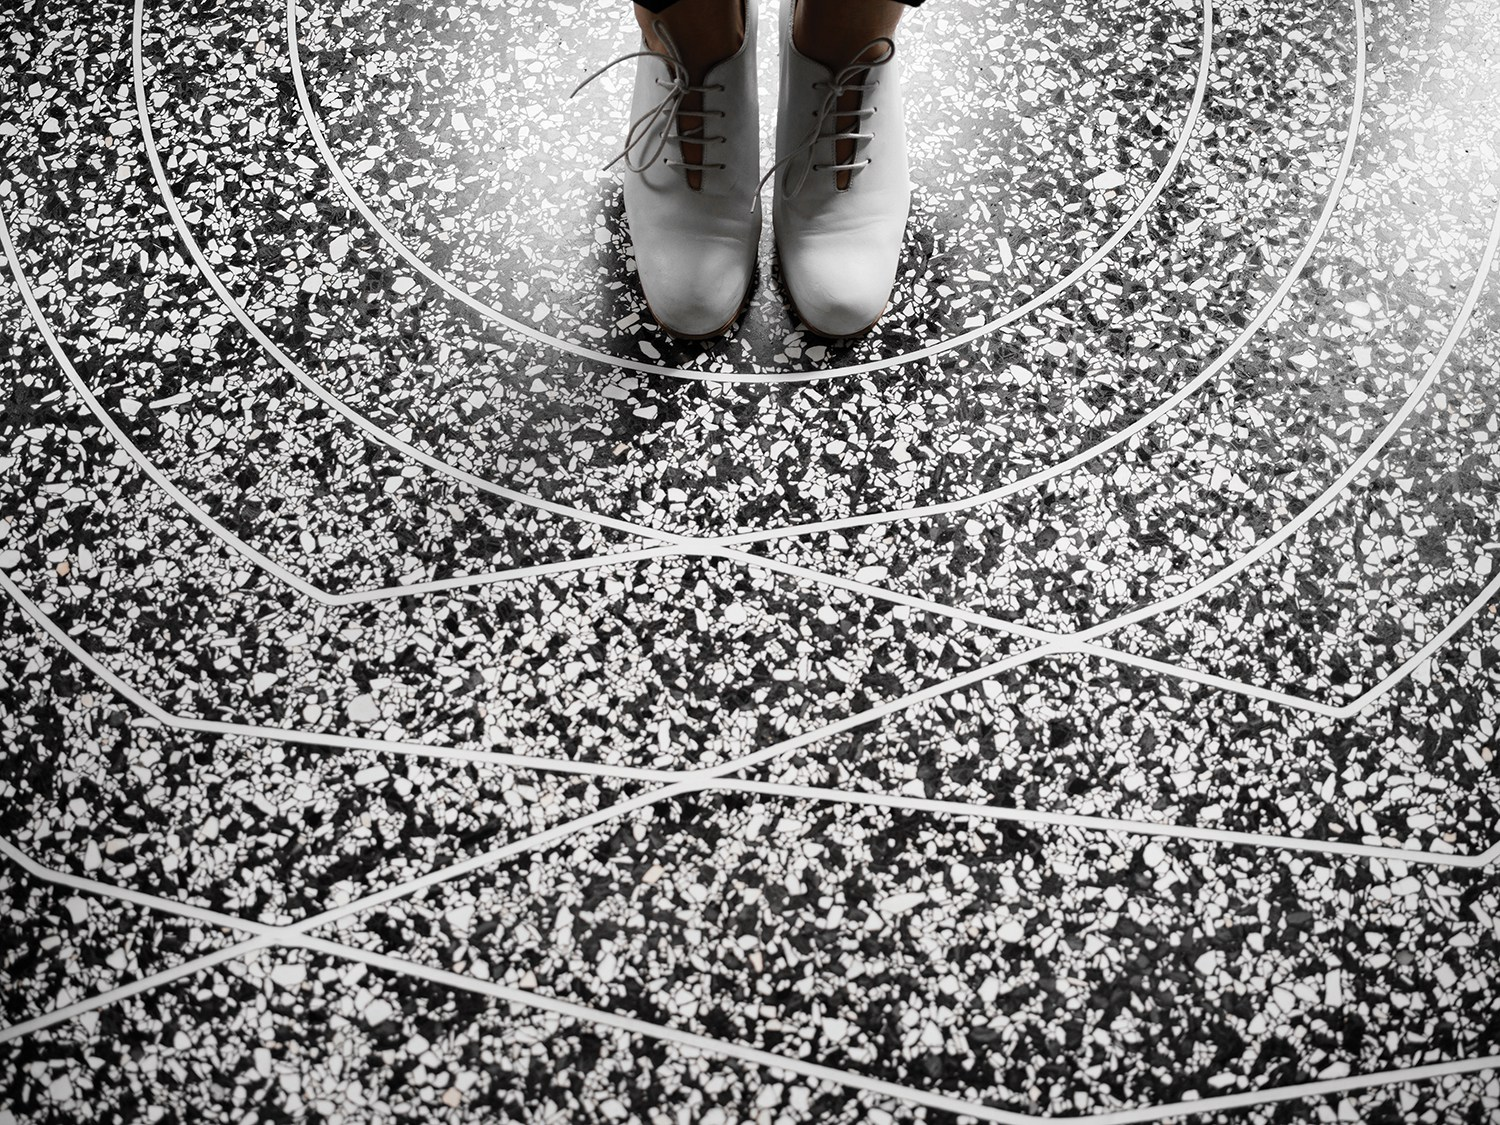 3D Printed Terrazzo Floors offer new sustainable freedom in any style. #flooring #flooringideas #kitchann